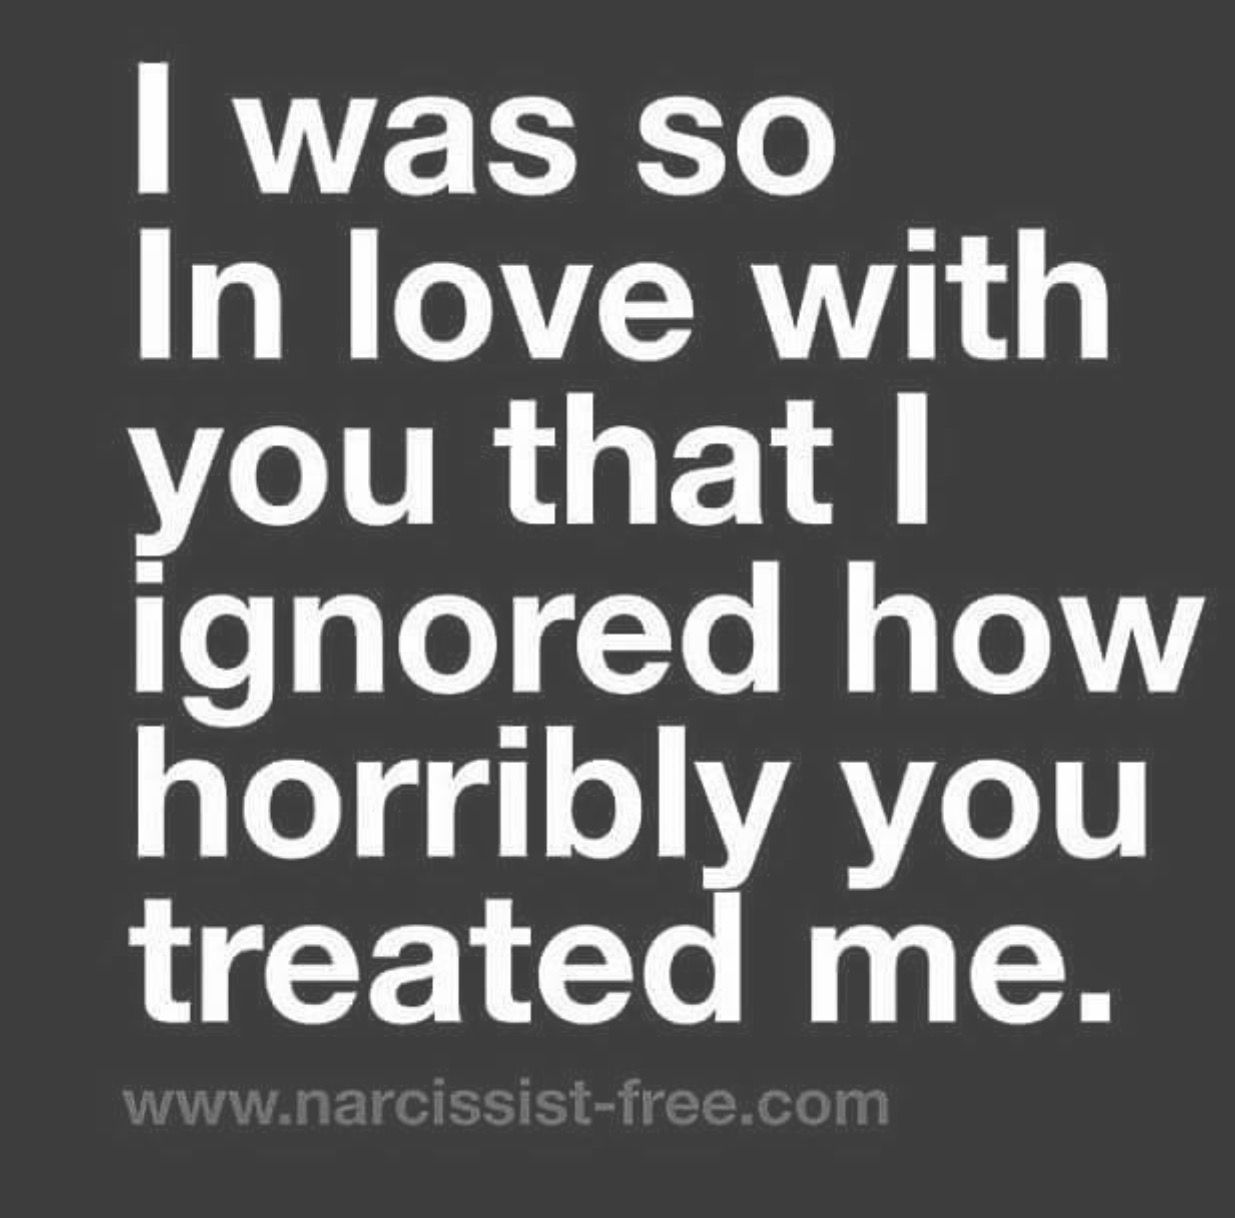 now i can look at what we had Everyone around me always said you treated · Quotes LoveHurt